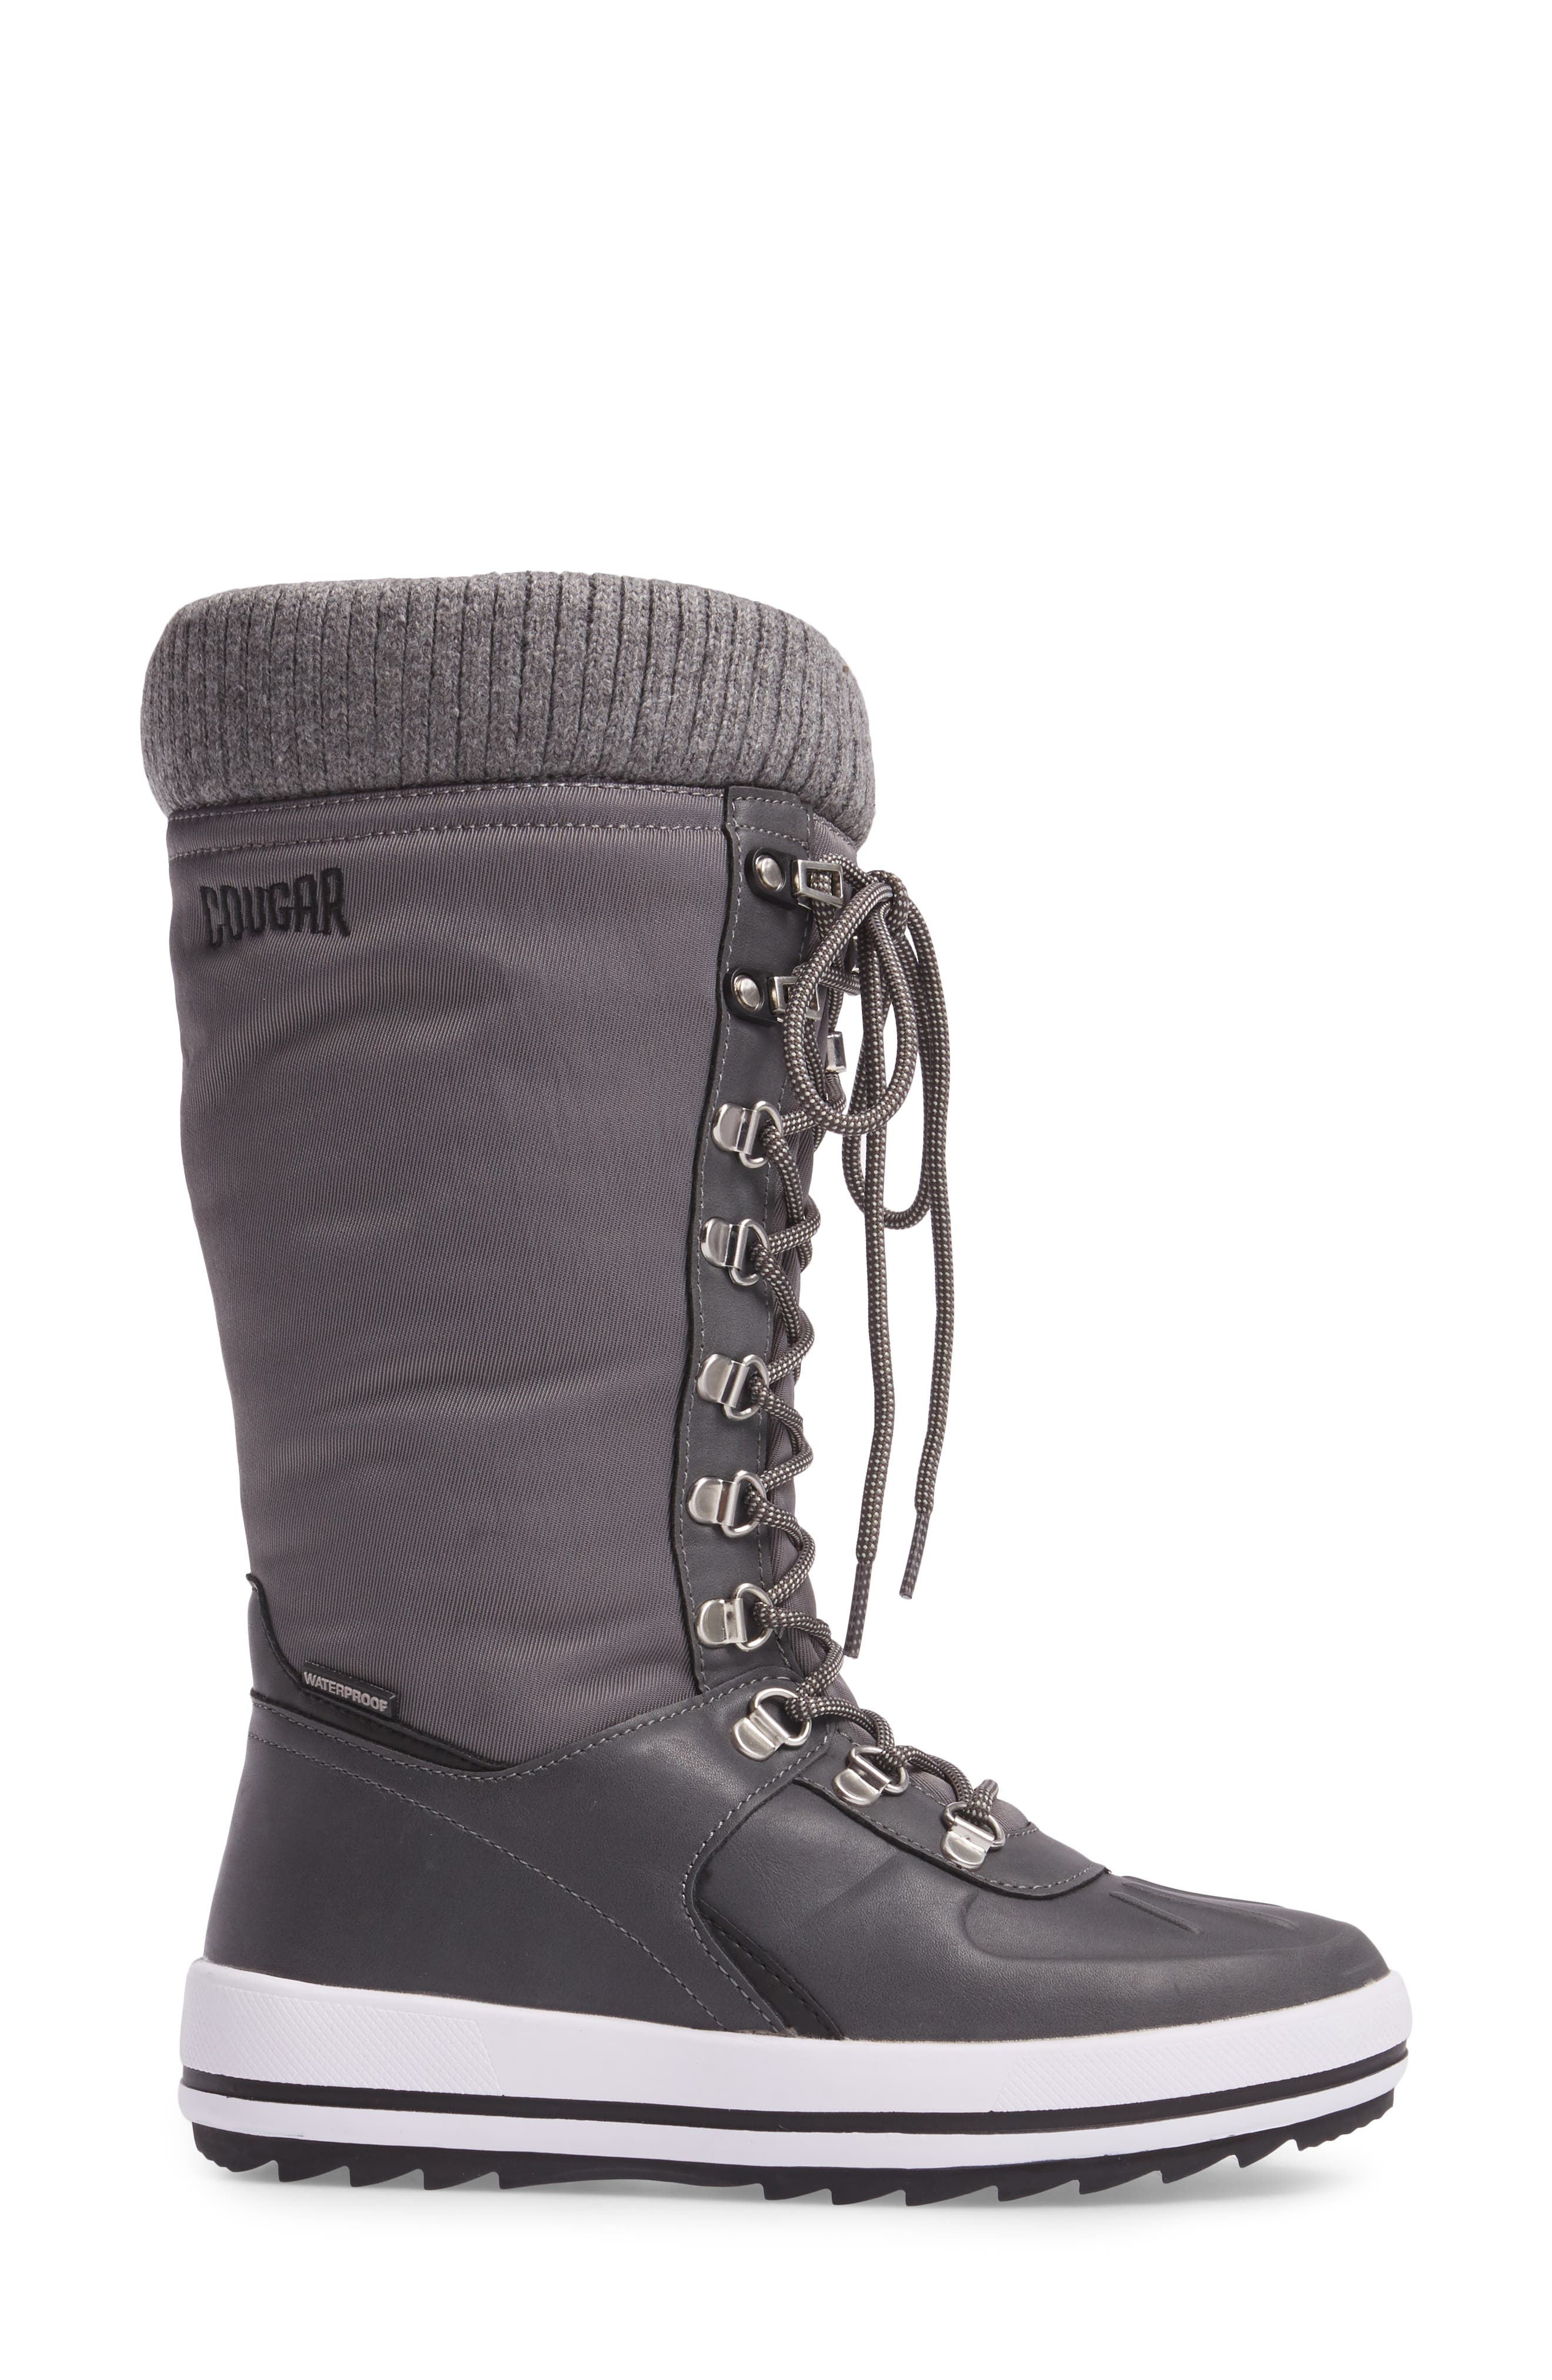 Vancouver Waterproof Winter Boot,                             Alternate thumbnail 9, color,